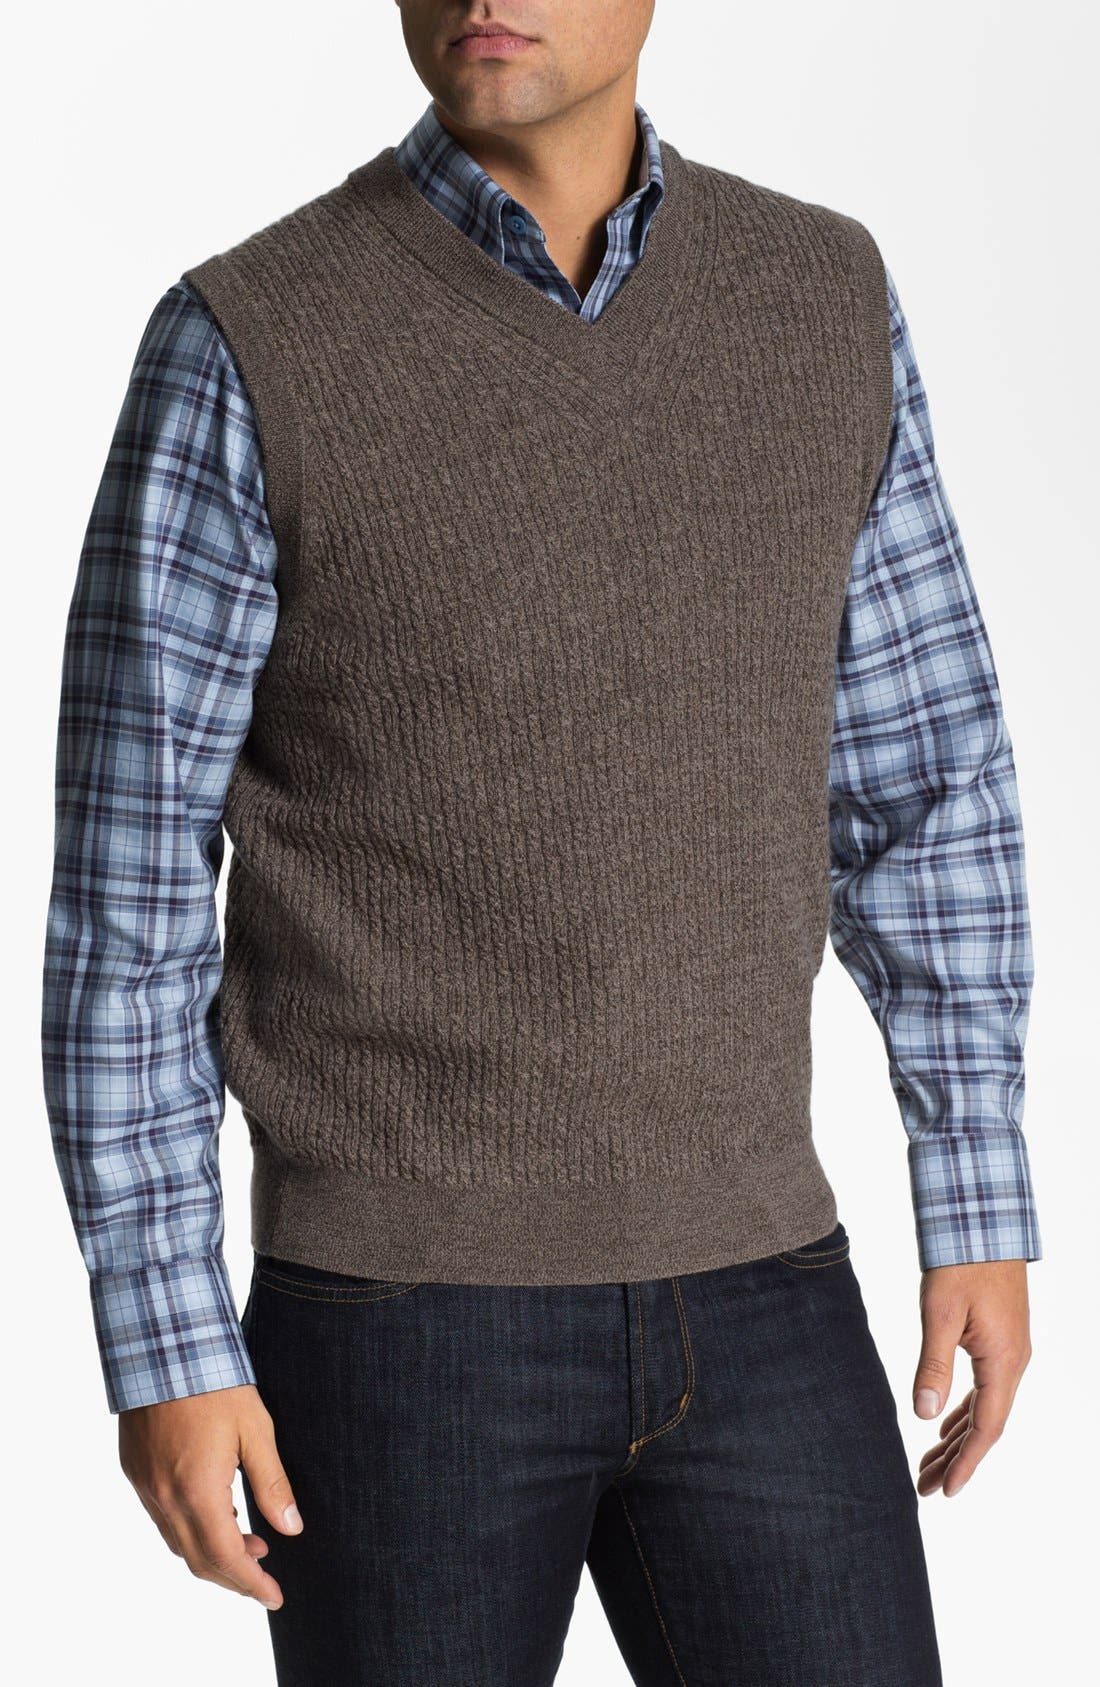 Alternate Image 1 Selected - Nordstrom Cable Knit Merino Wool Sweater Vest